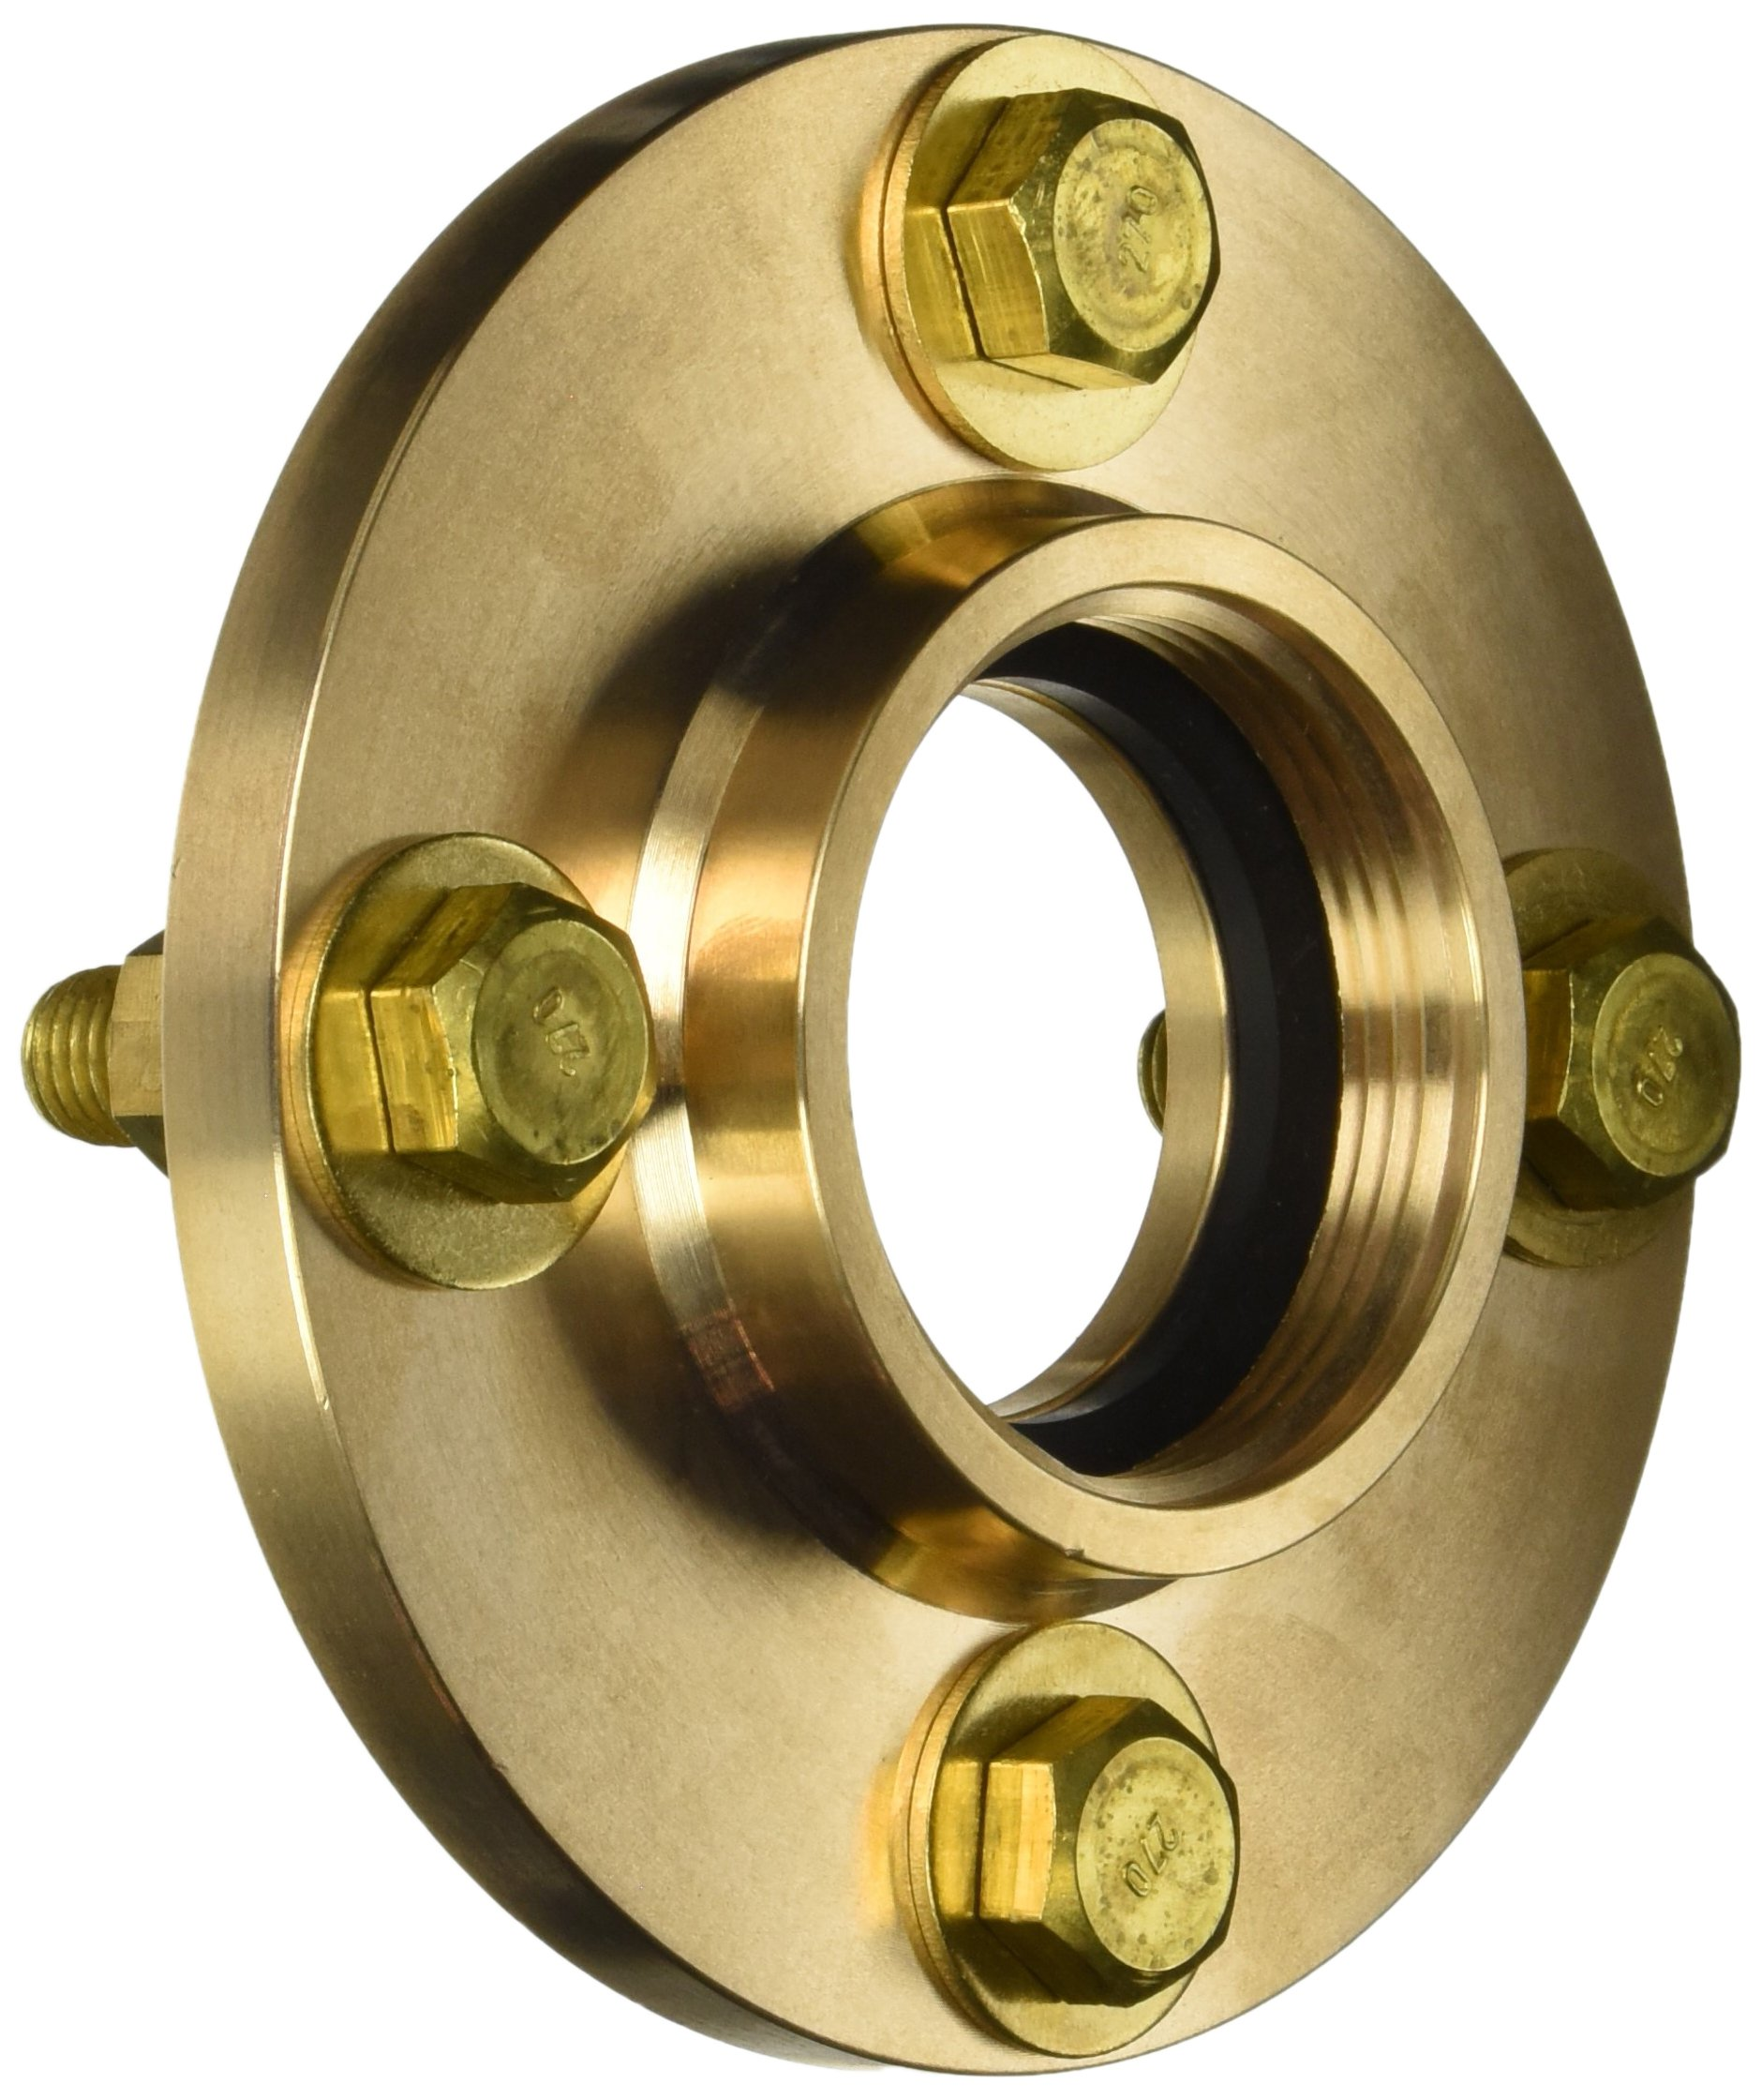 Dixon 09-318-00001 Brass Shore Connection, 7'' OD Shore Side, Brass Flange with 4-3/4'' Holes, 7''